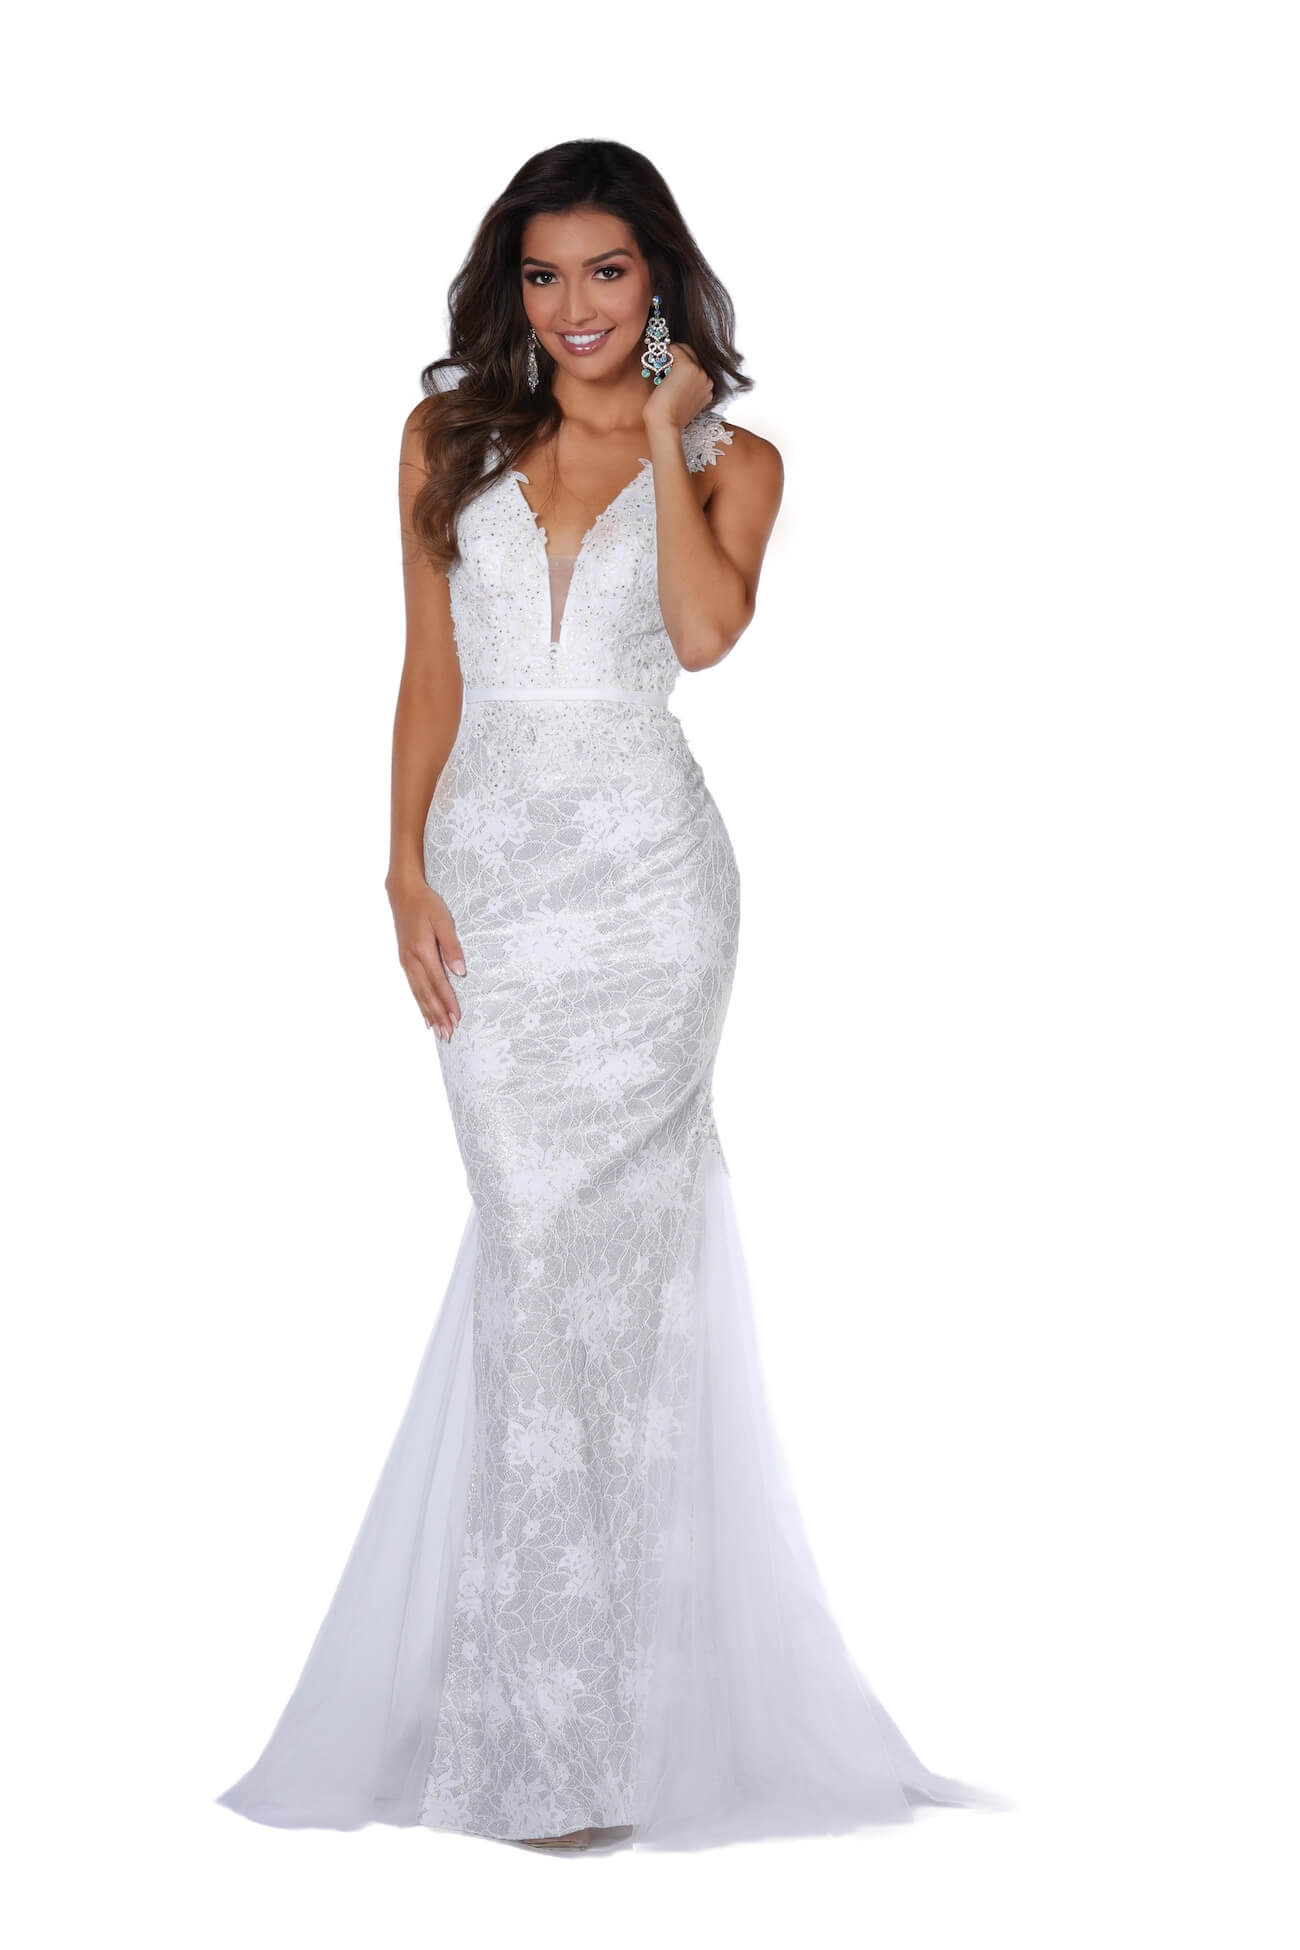 Style 8909 Vienna White Size 6 Prom Lace Mermaid Dress on Queenly